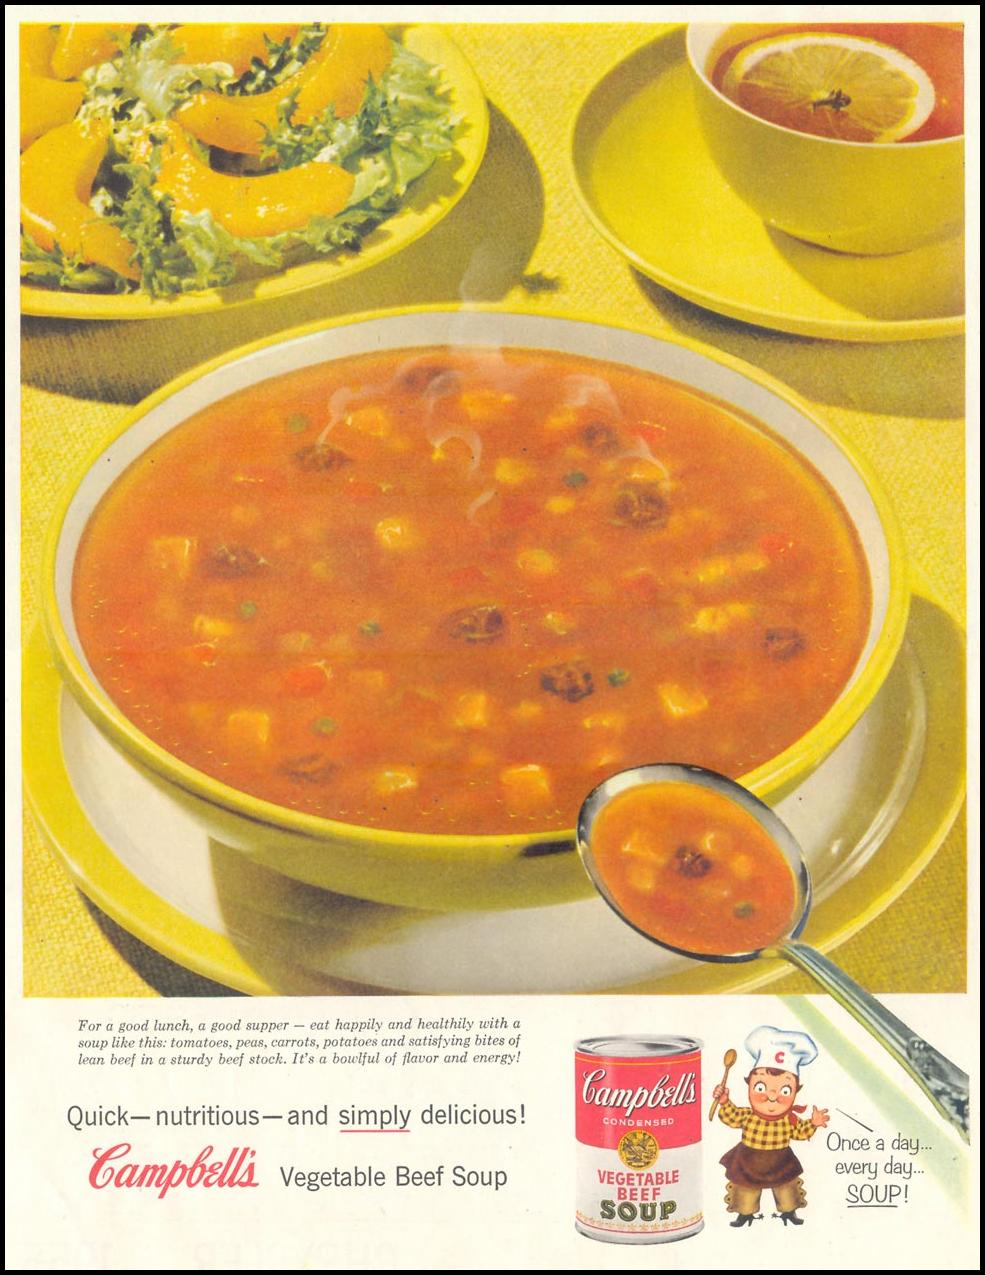 CAMPBELL'S SOUP SATURDAY EVENING POST 02/05/1955